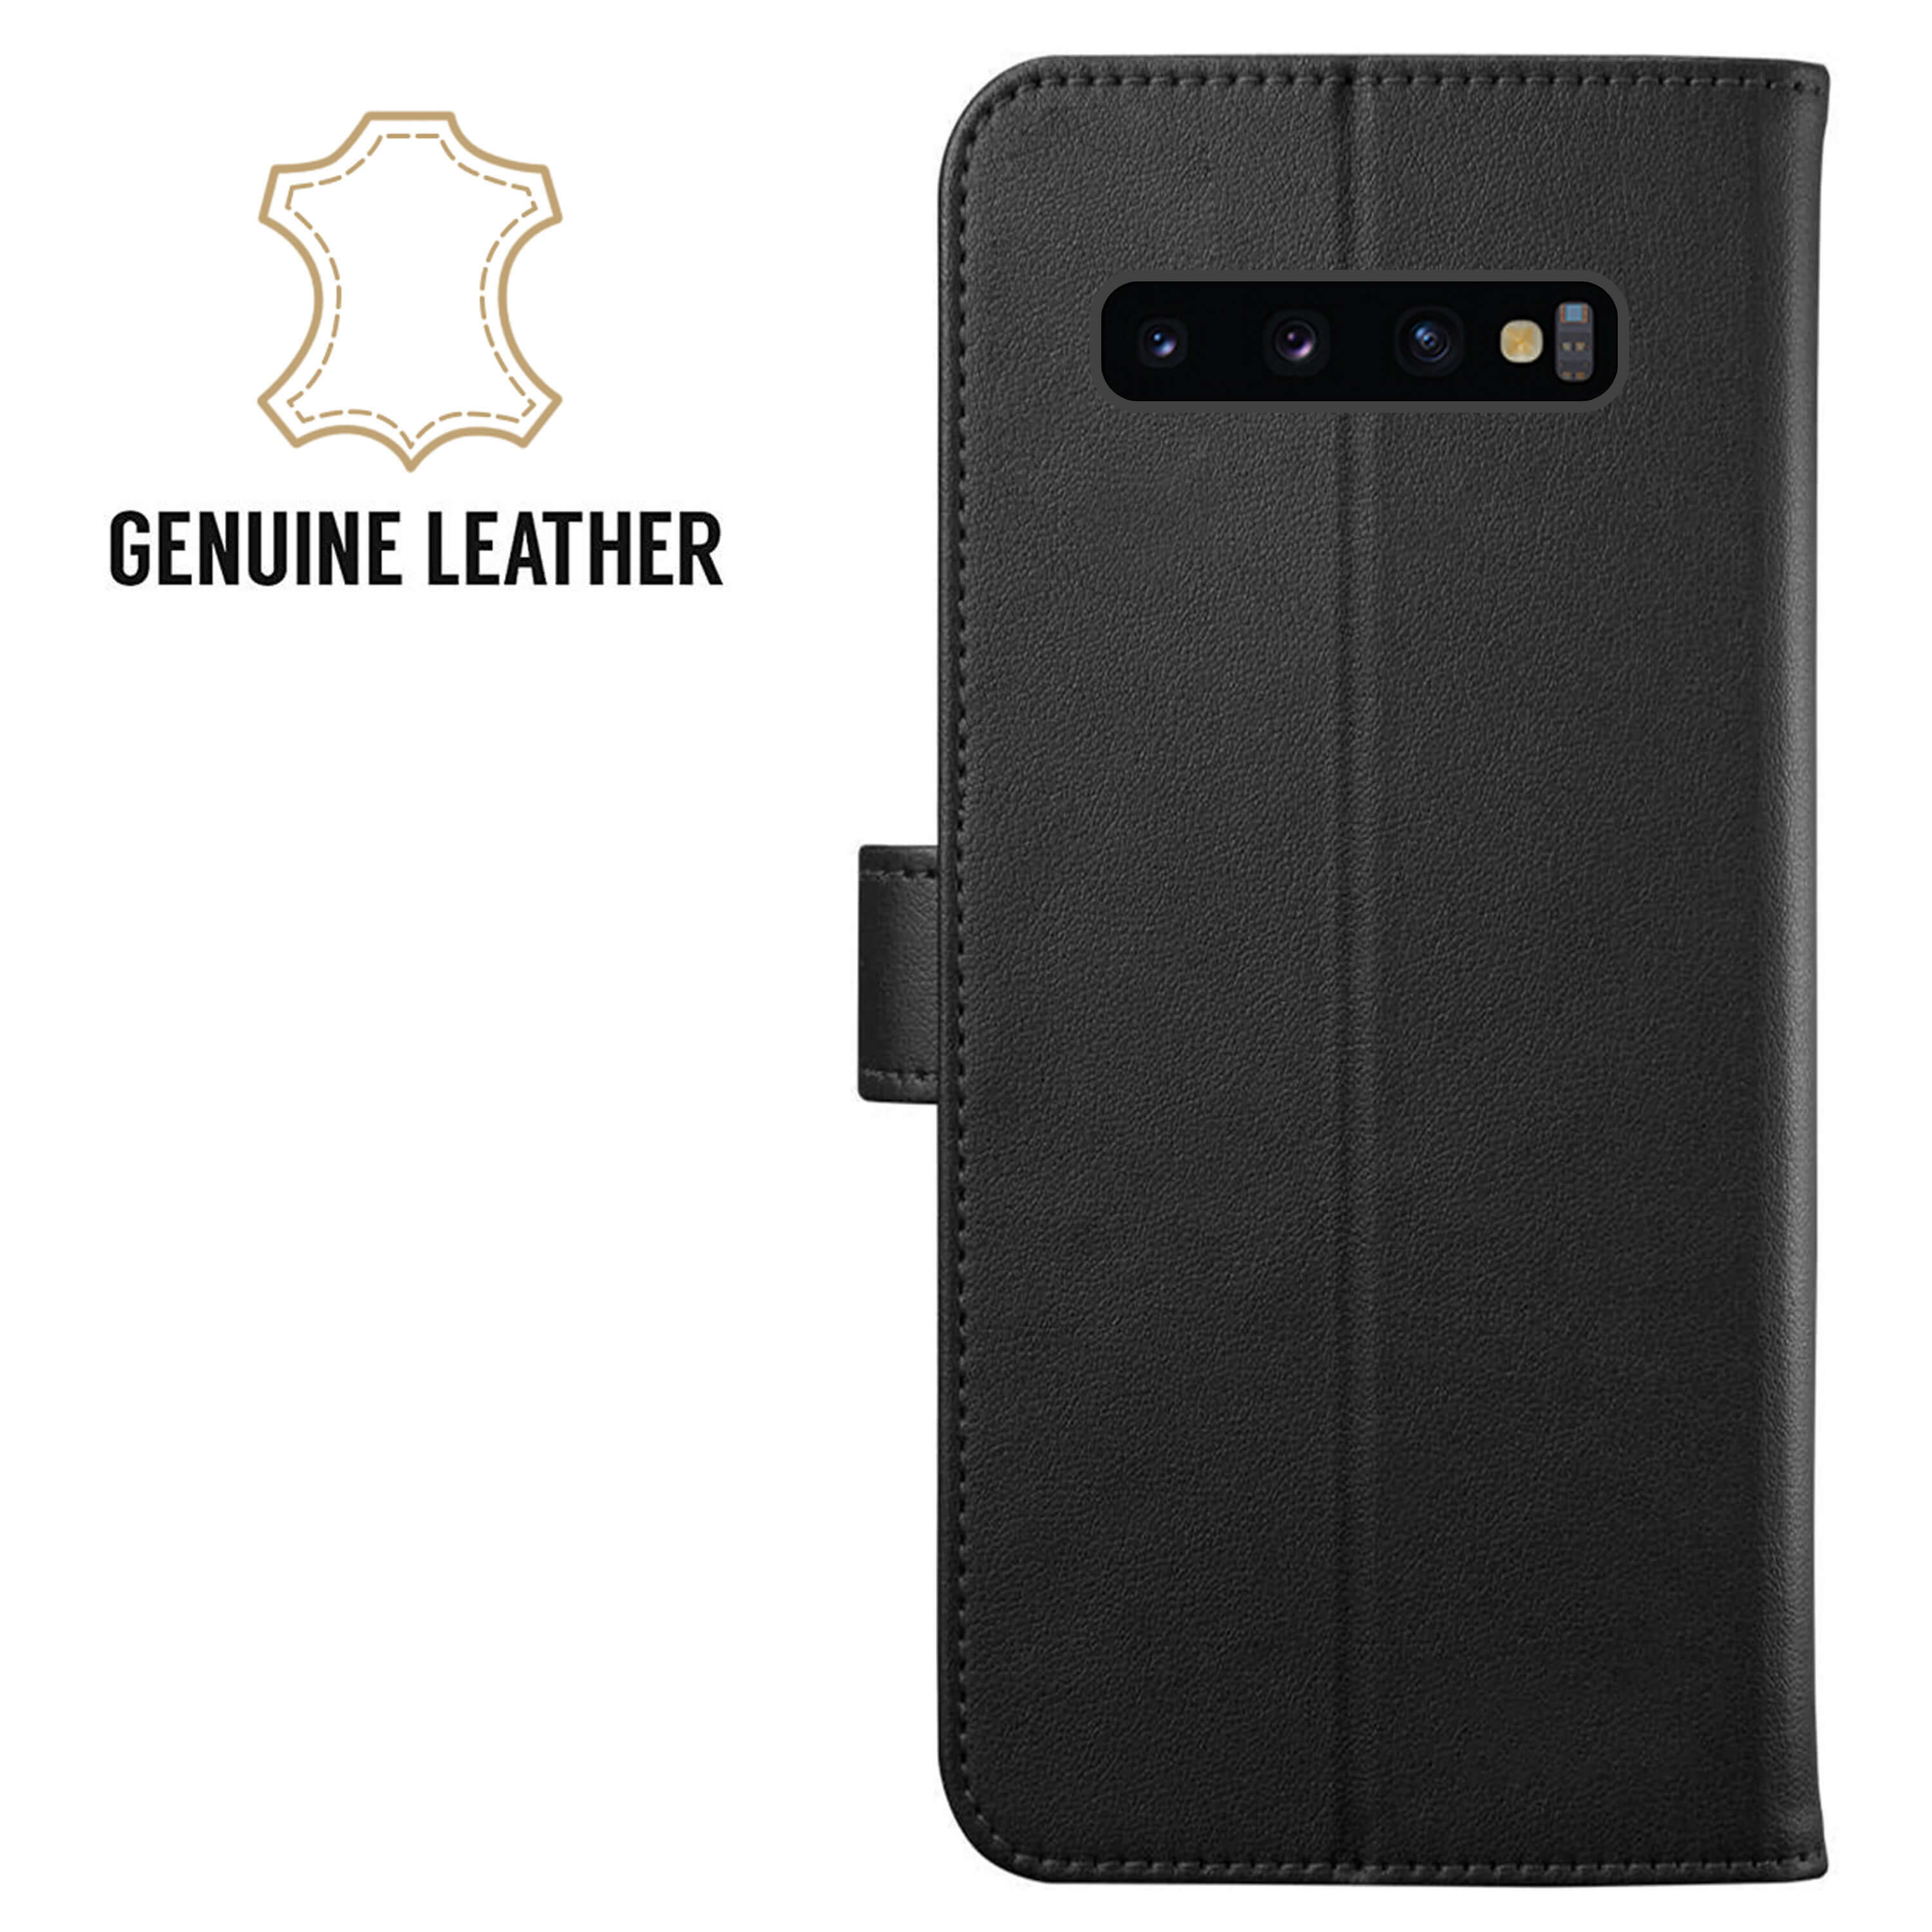 Leather-Flip-Wallet-Magnetic-Case-Cover-For-Samsung-Galaxy-S10-Plus-S9-S8-A50 thumbnail 13